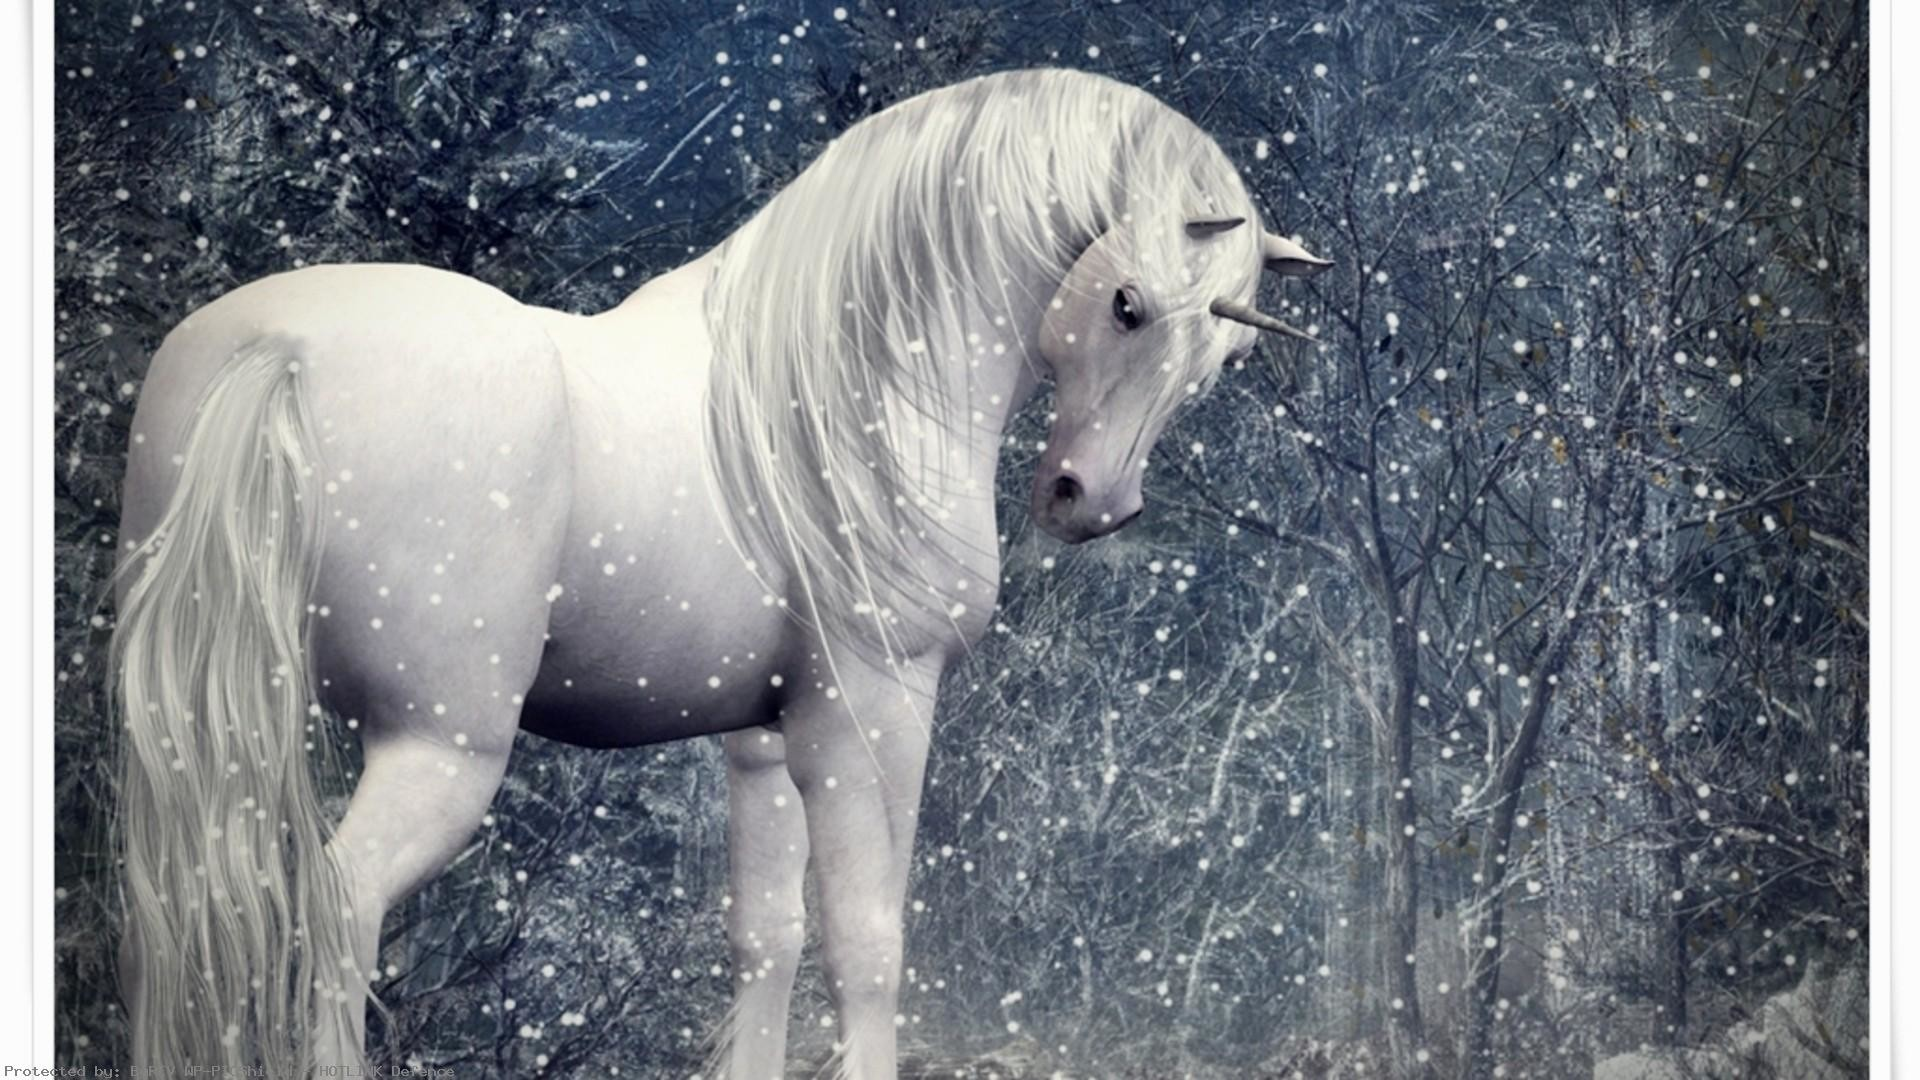 Unicorn-in-a-snowy-forest-1920×1080-snowy-forest-